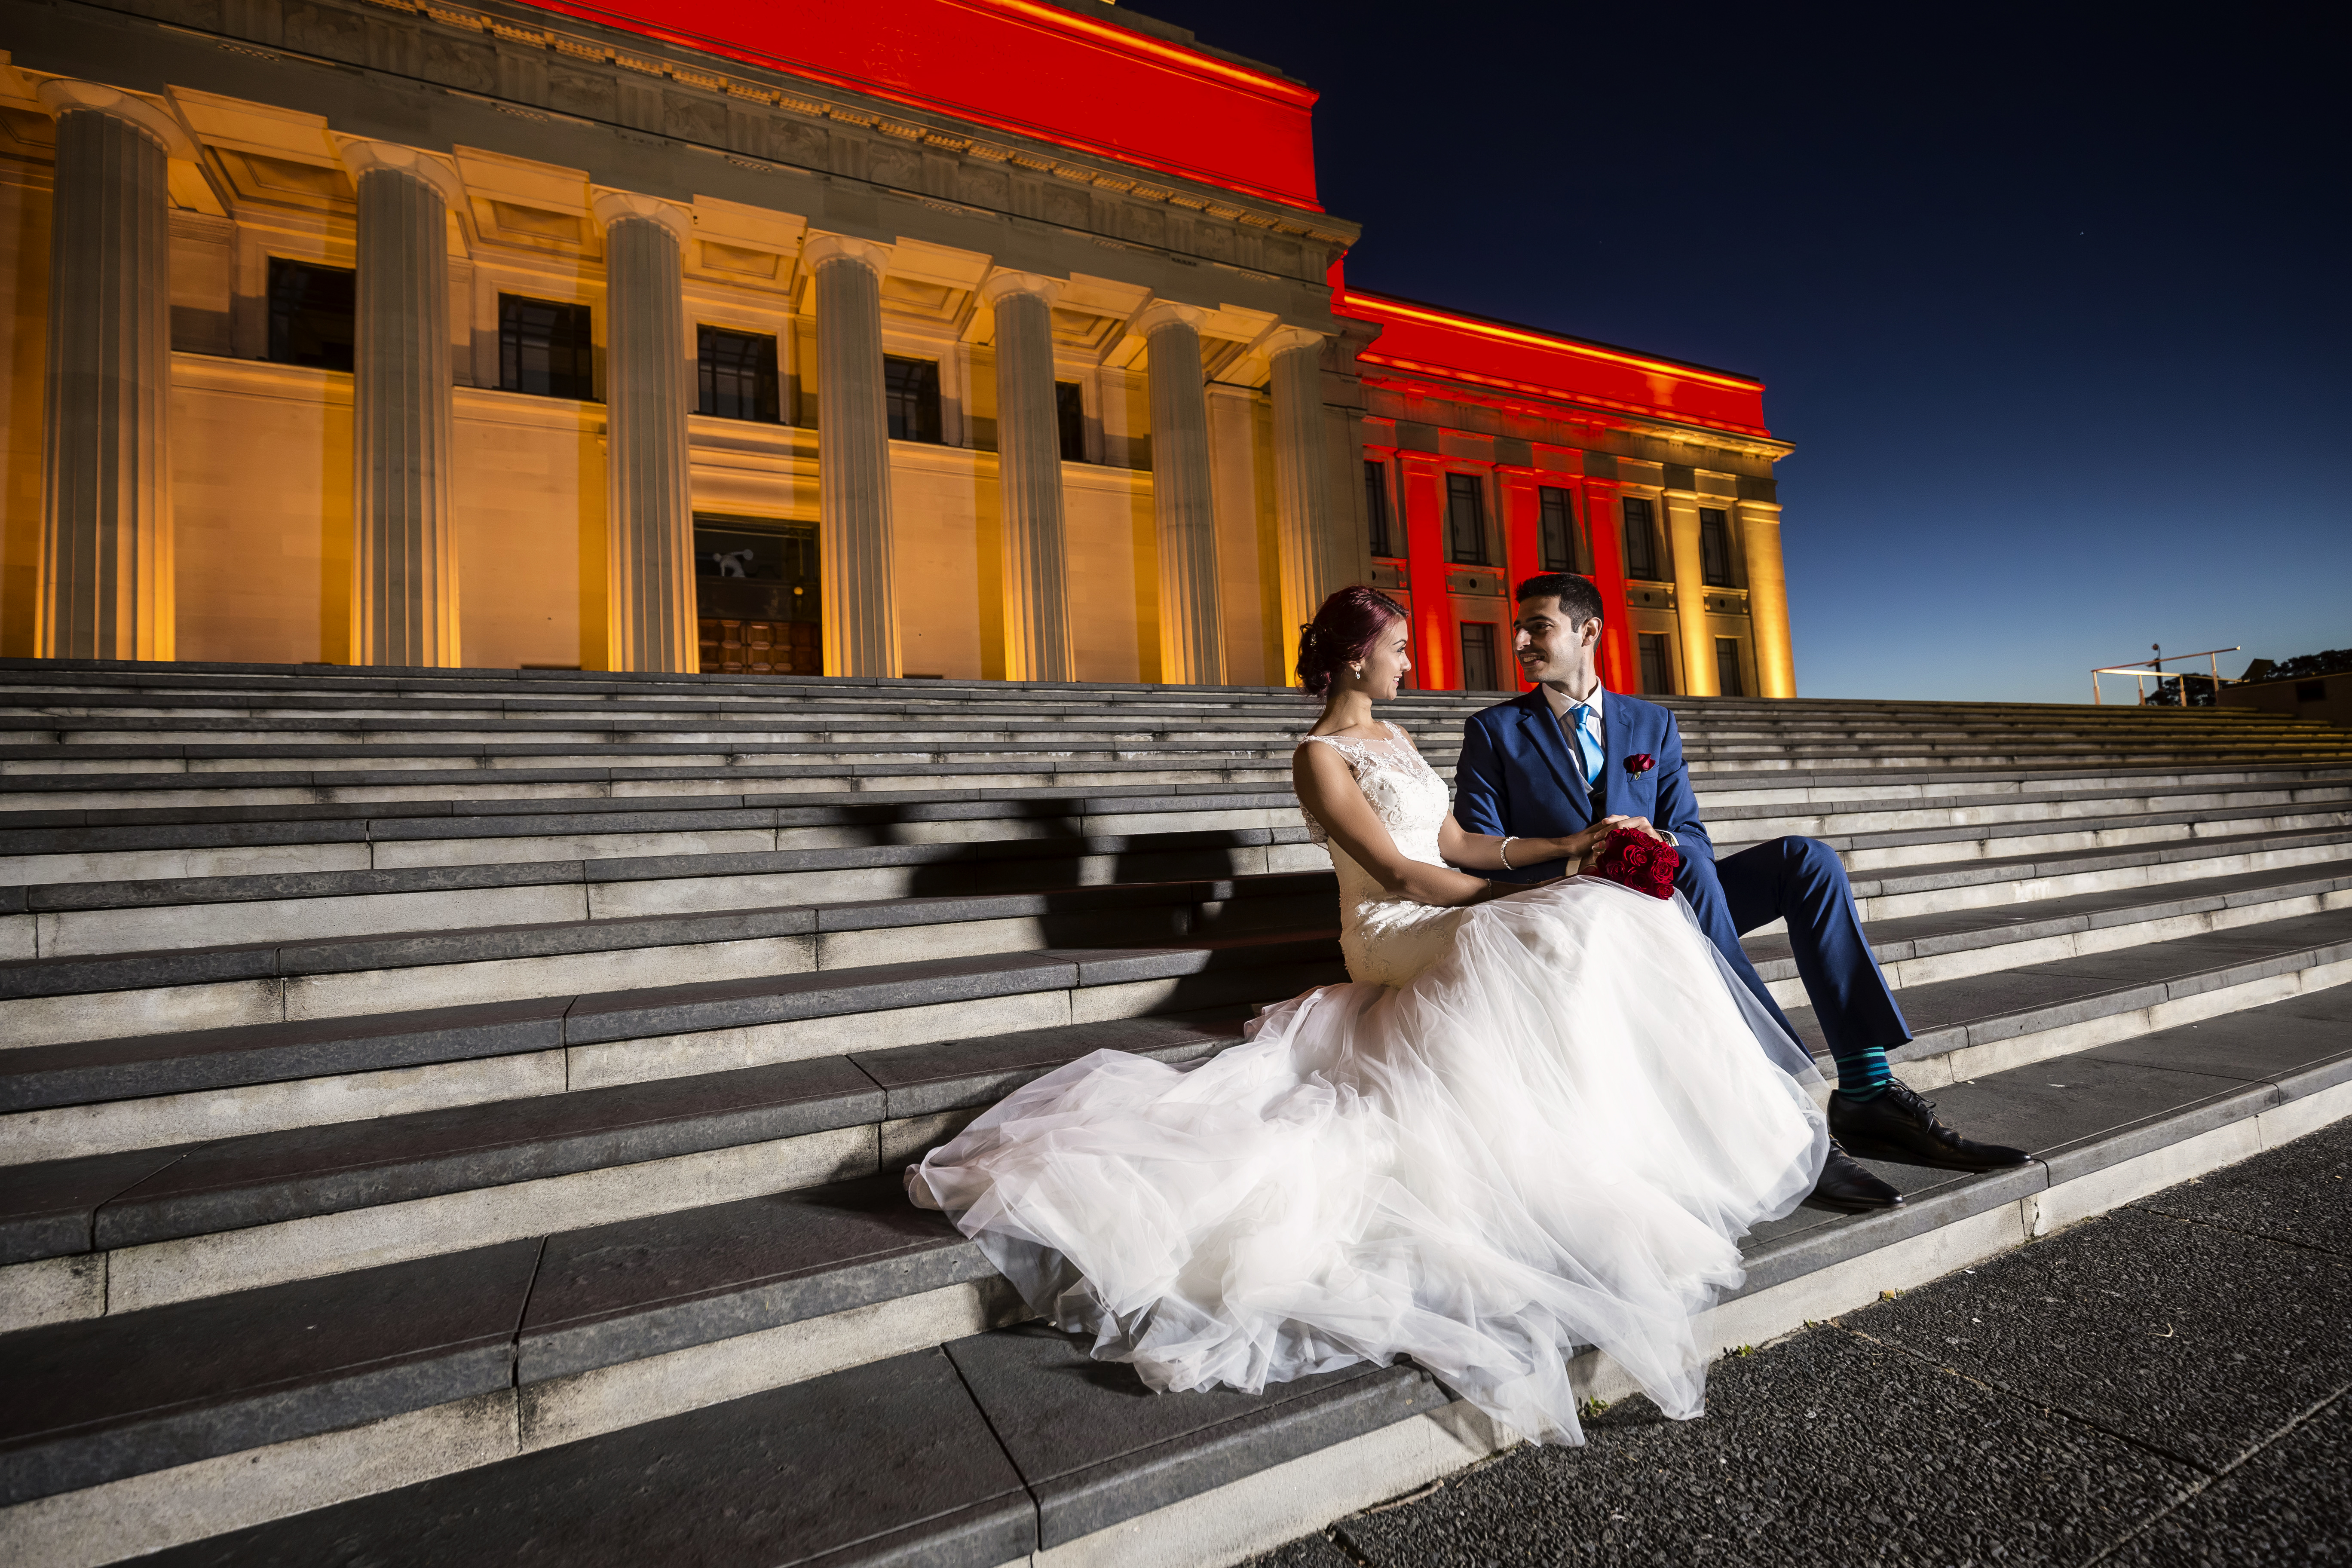 Bridal Photography in Aucklan Museum